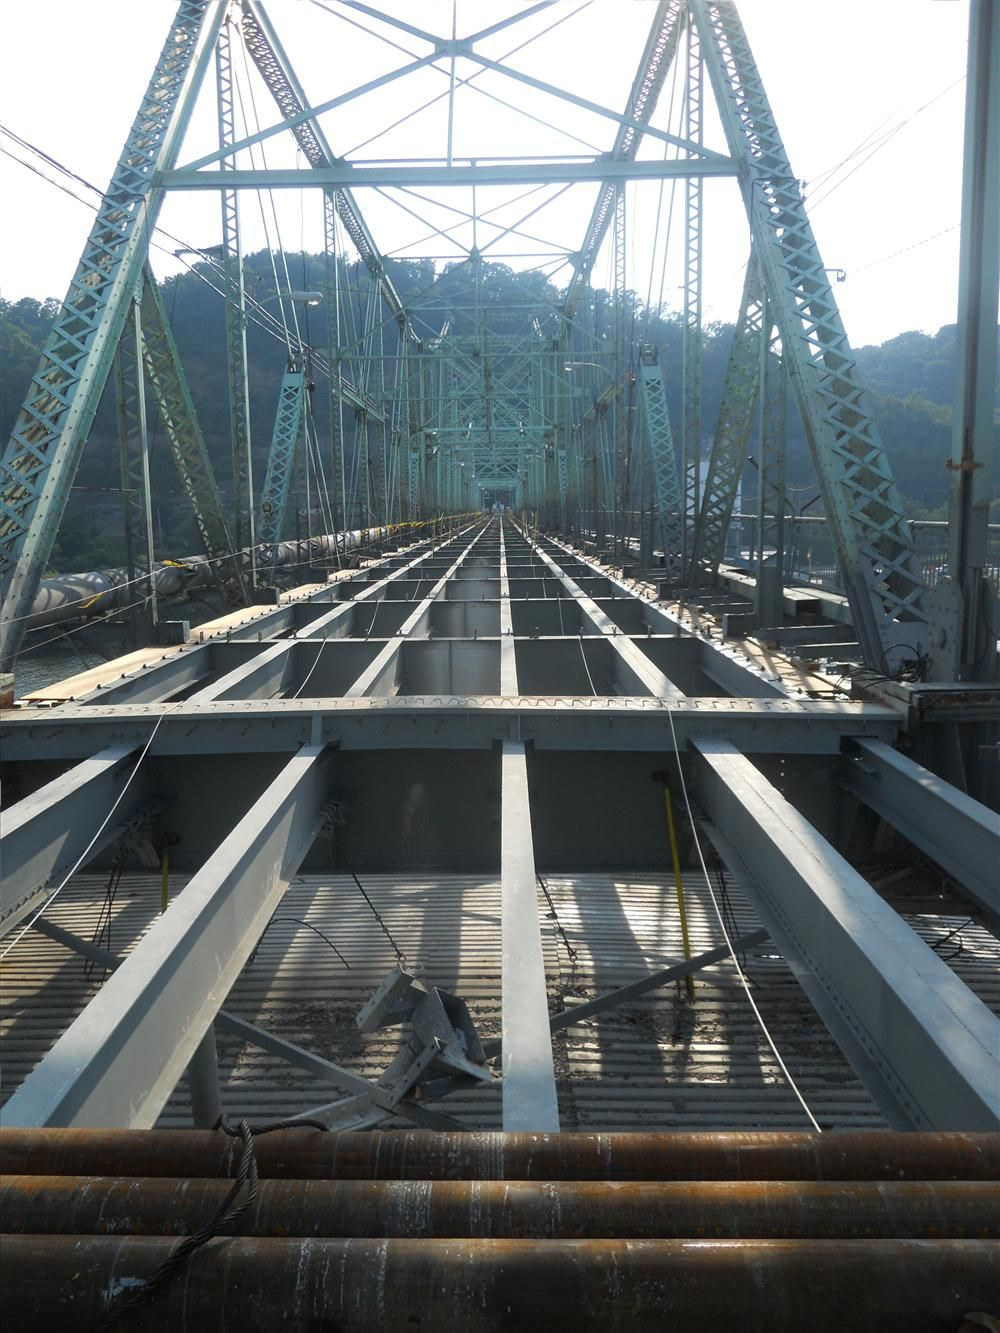 The contract calls for rehabilitation of the 10-span bridge, including deck and sidewalk replacement, steel repairs, concrete spall repairs, structural steel painting, new parapet walls, railing repairs, bituminious paving patching, pavement markings and